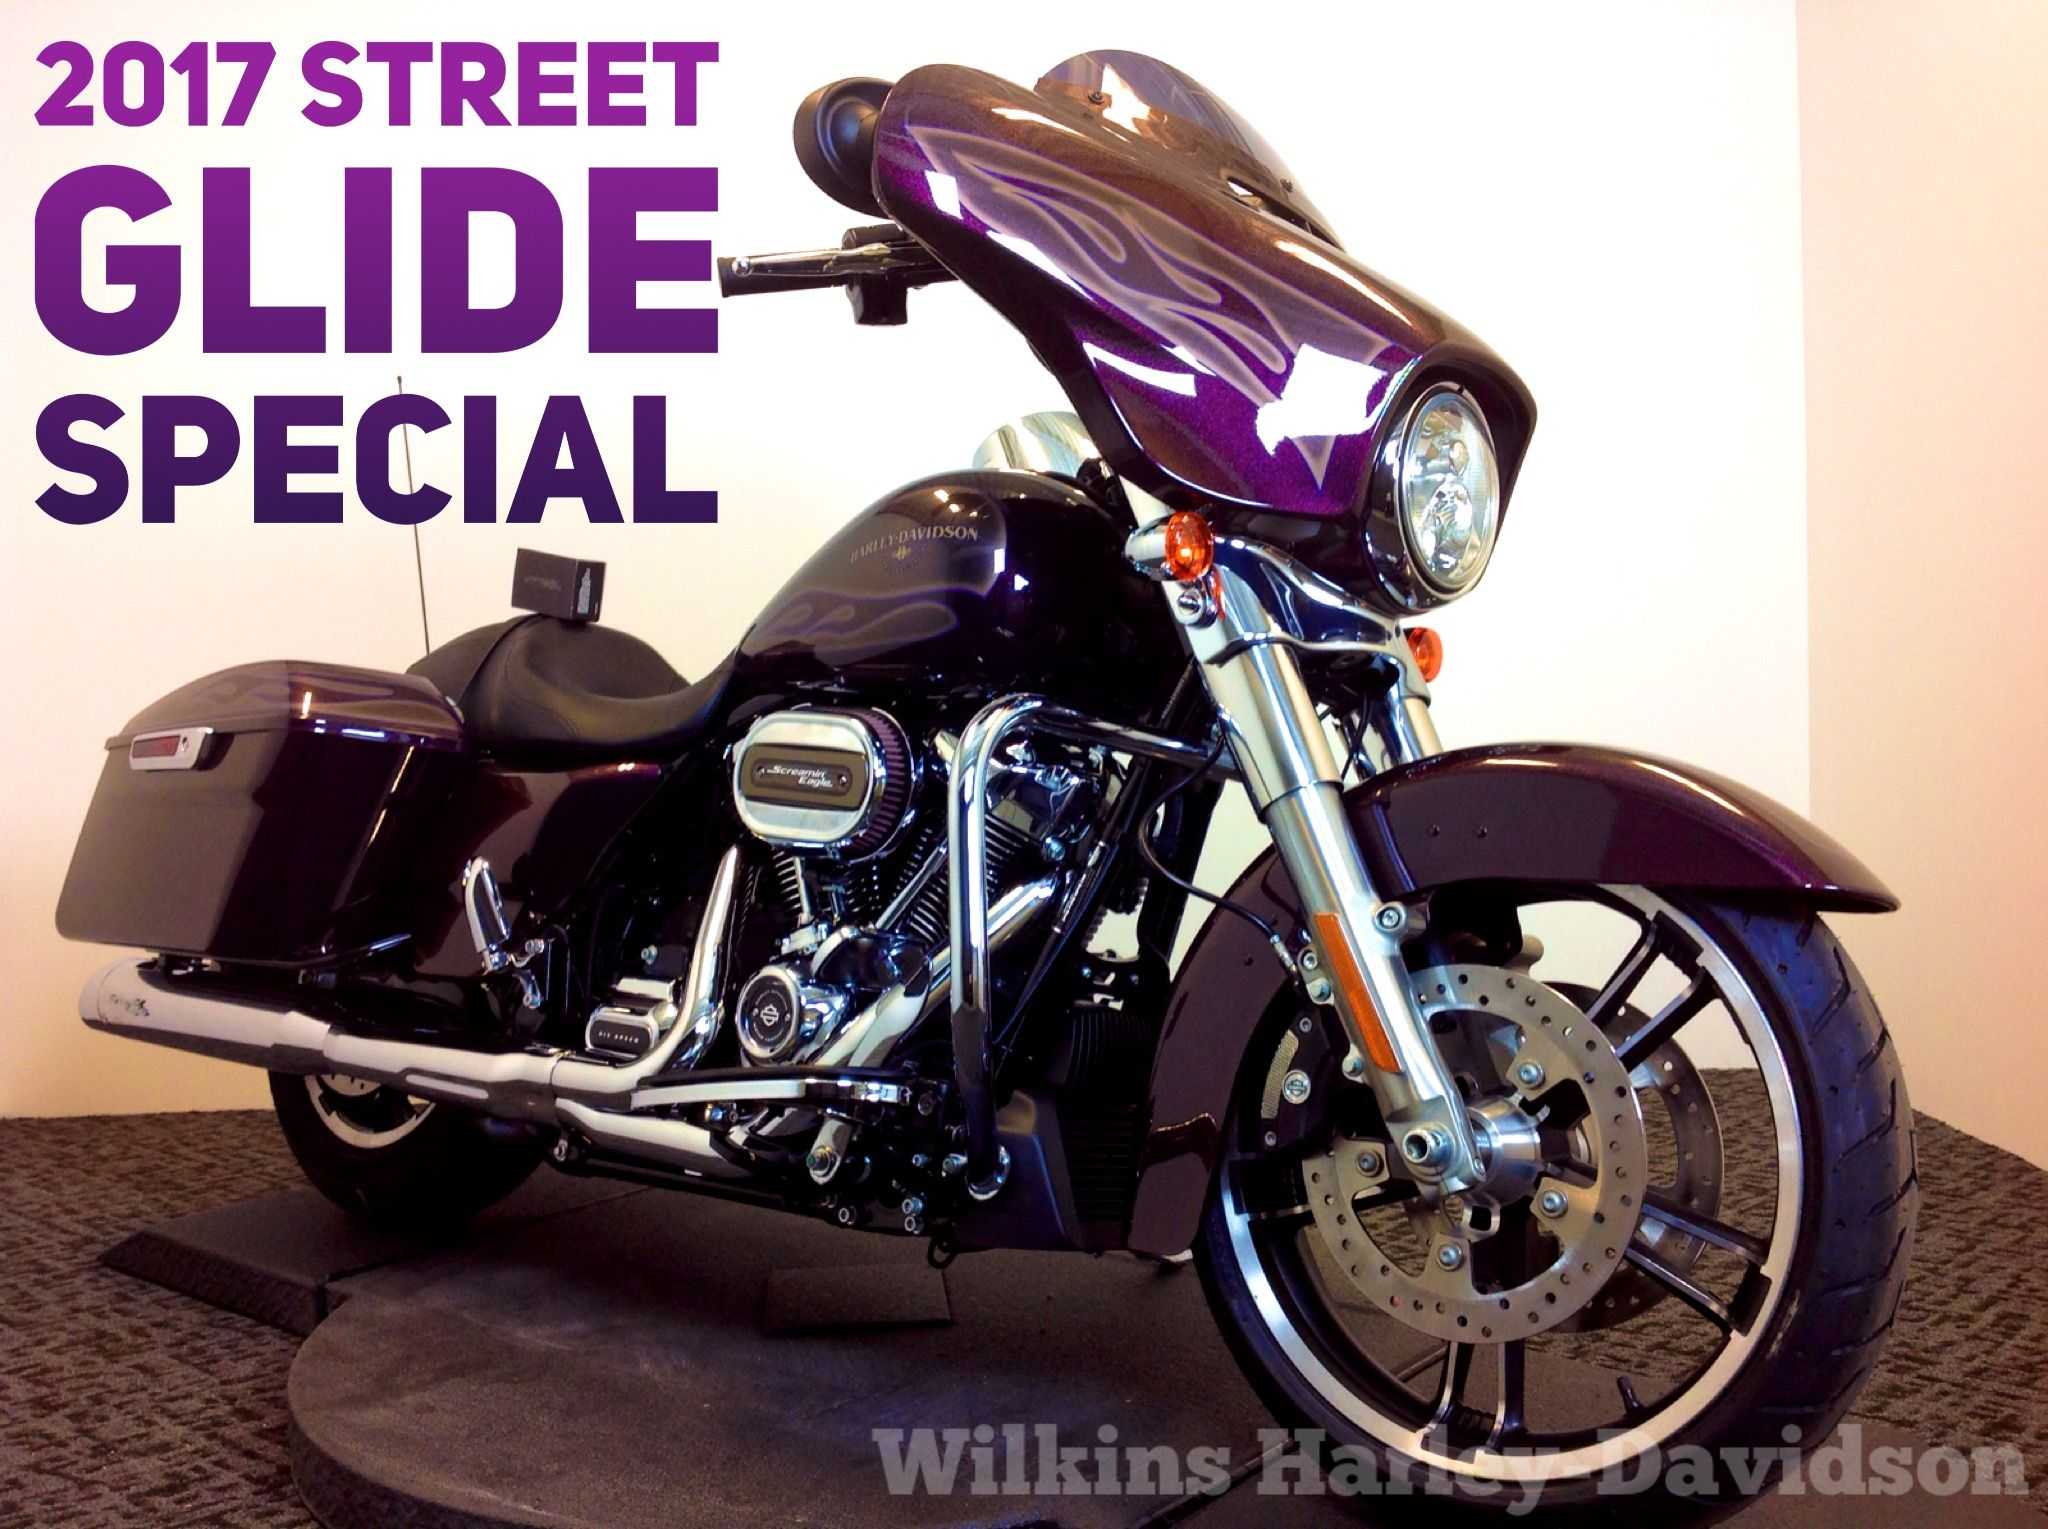 Awesome 2017 street glide special in mystic purple flake